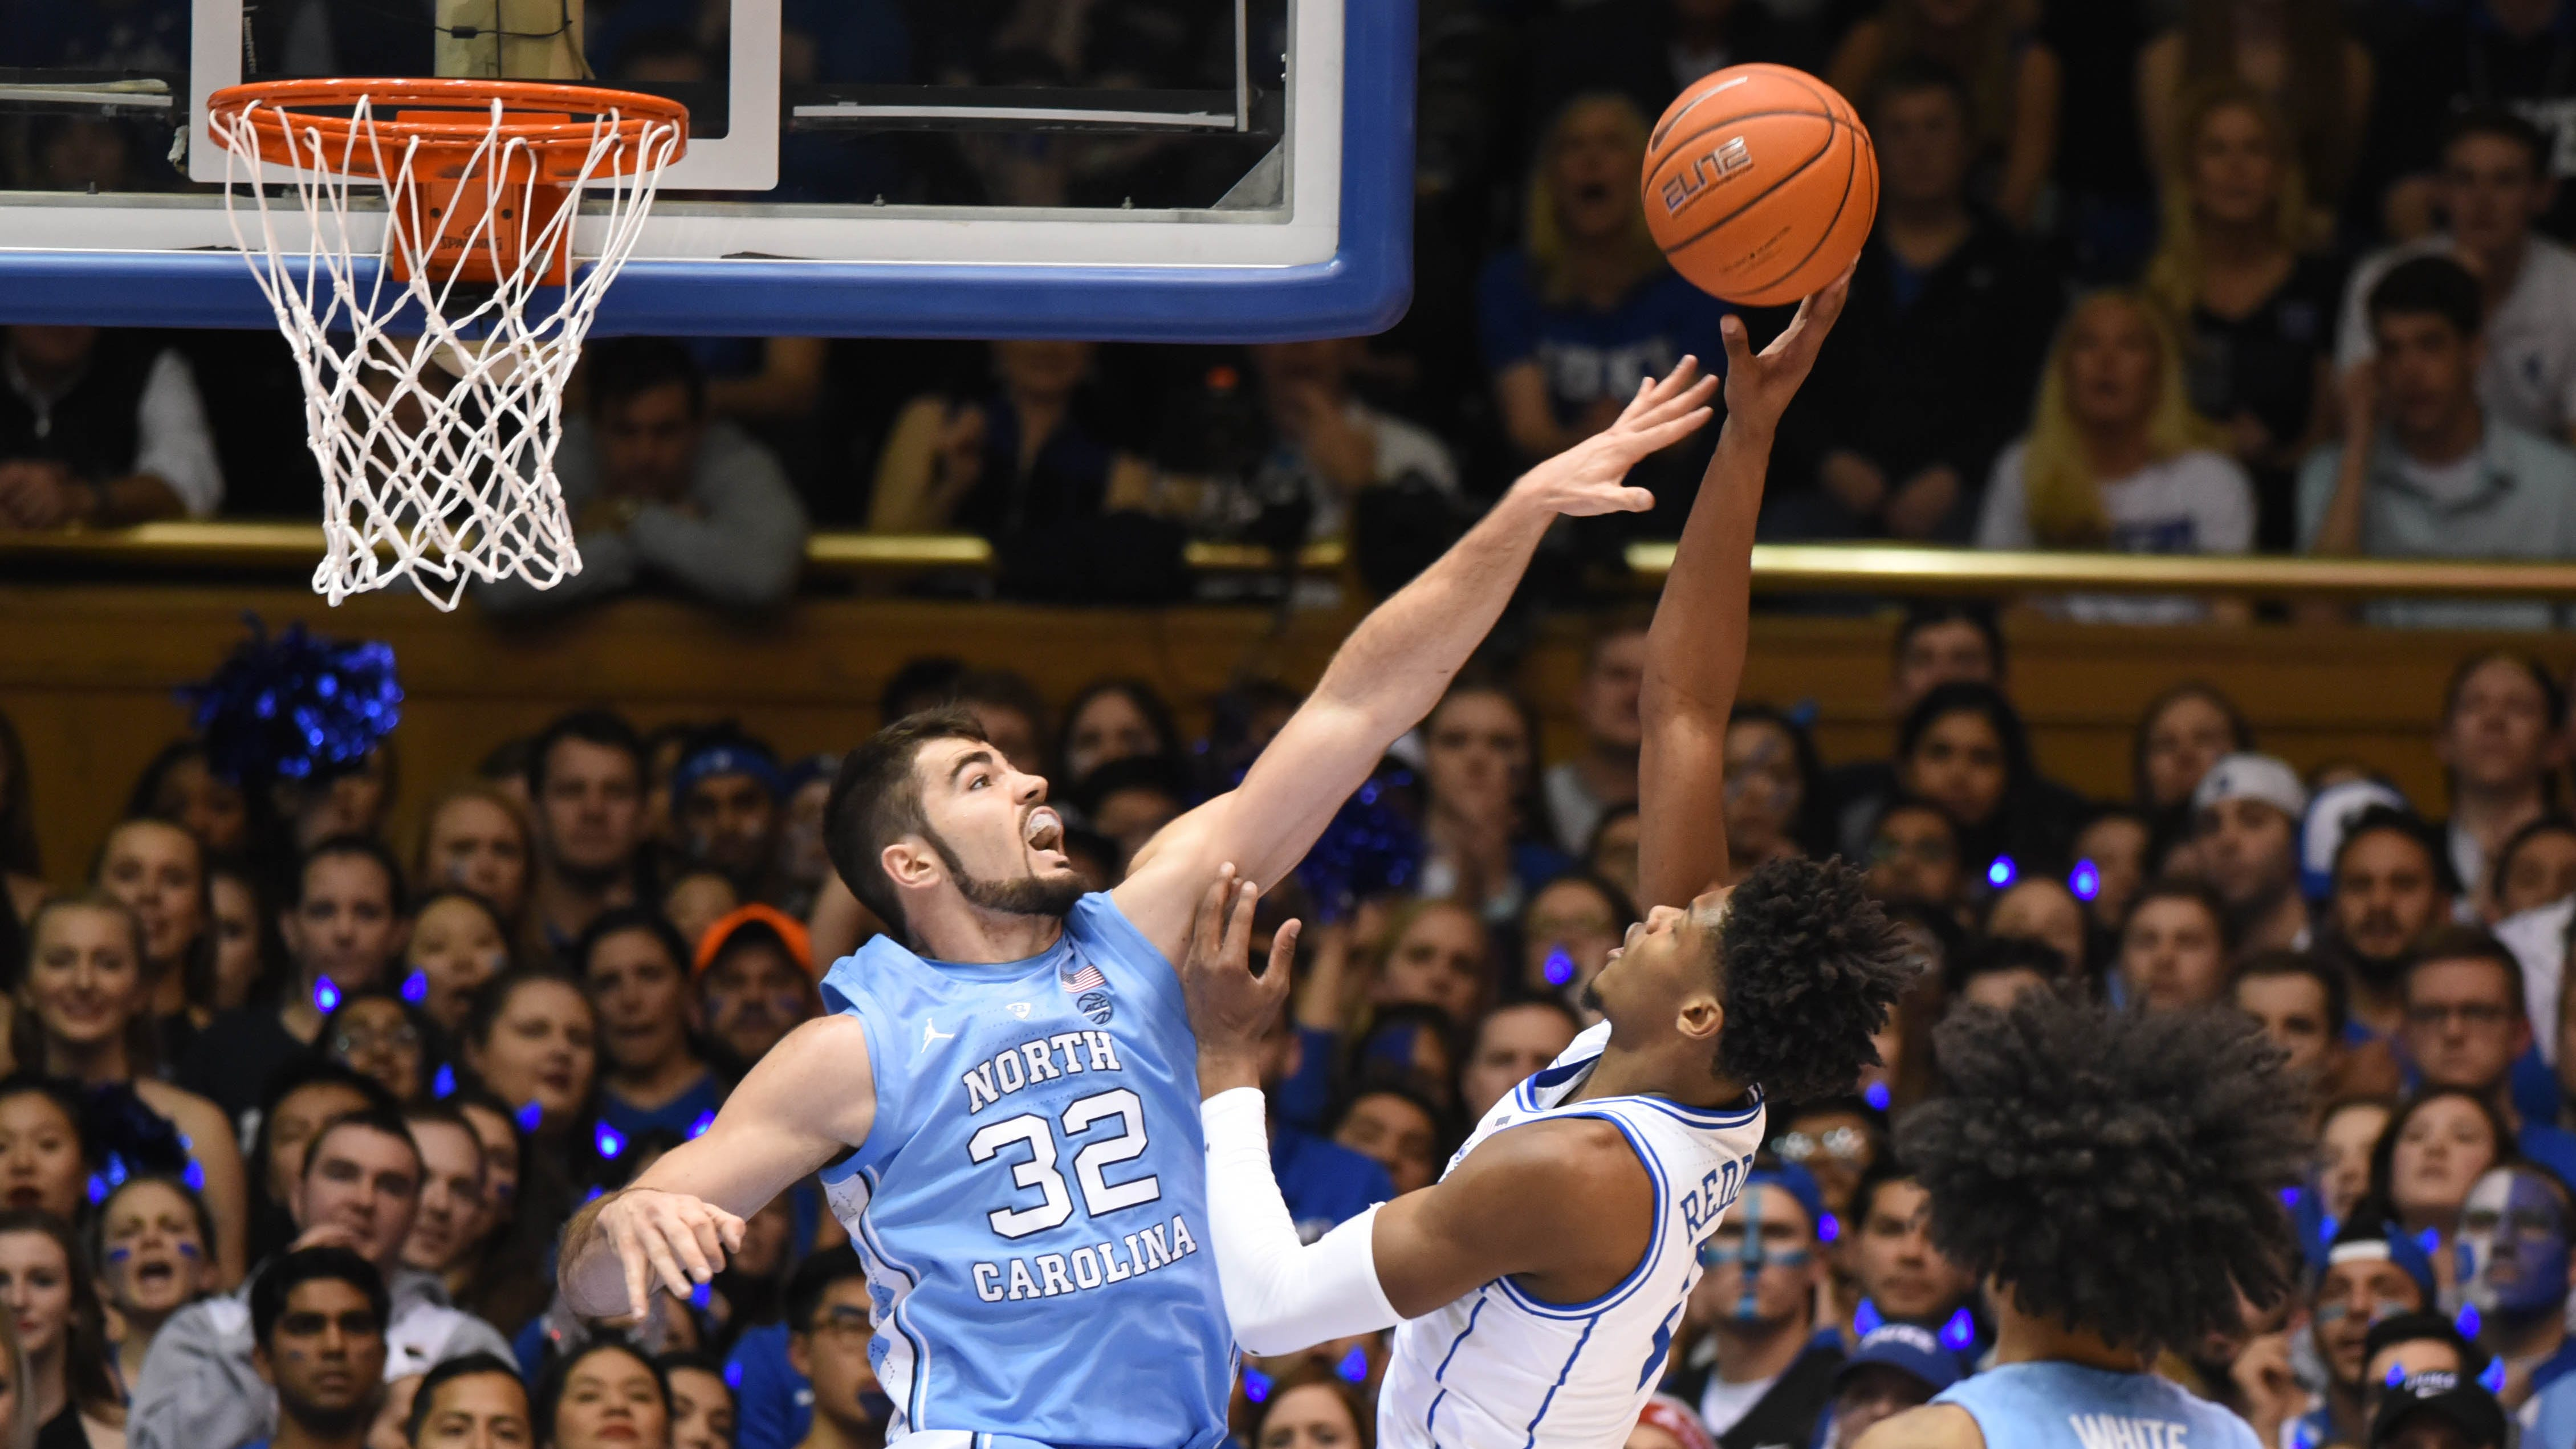 Feb 20, 2019; Durham, NC, USA; Duke Blue Devils forward Cam Reddish (2) shoots over North Carolina Tar Heels forward Luke Maye (32) during the first half at Cameron Indoor Stadium. Mandatory Credit: Rob Kinnan-USA TODAY Sports